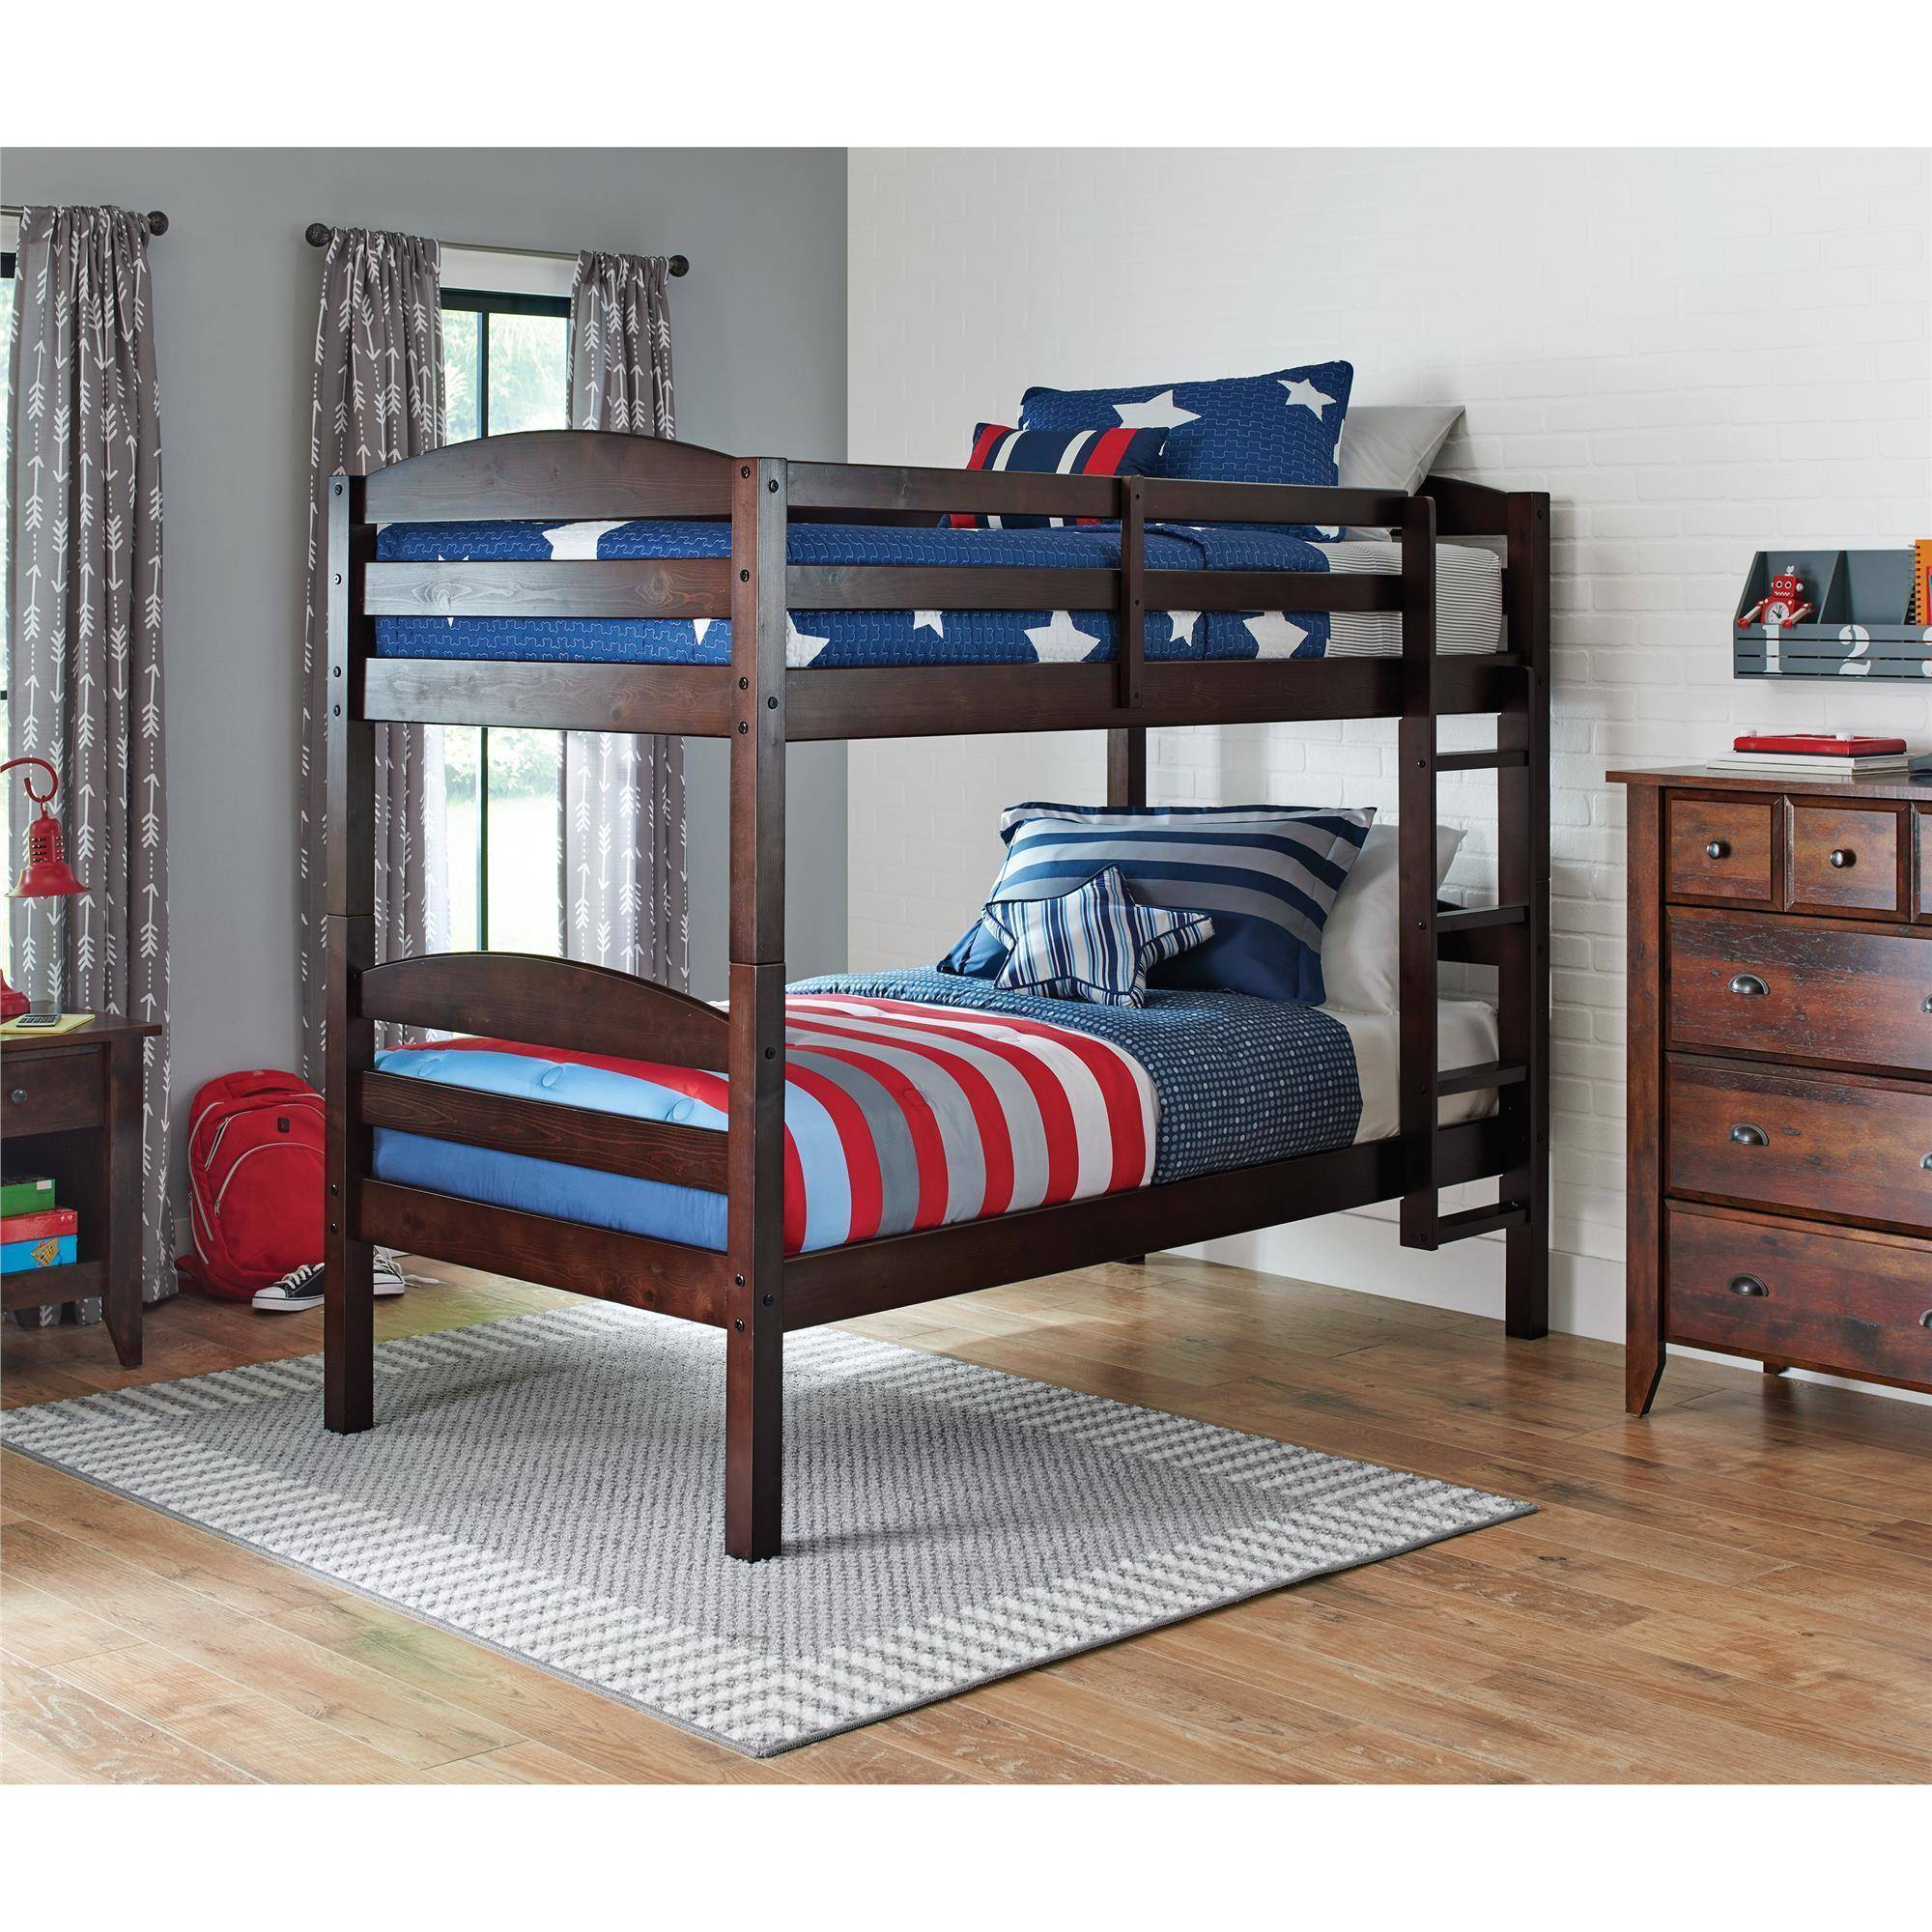 Get a new bunk-bed with multiple options for wood finishes starting at $159 (Photo via Walmart)